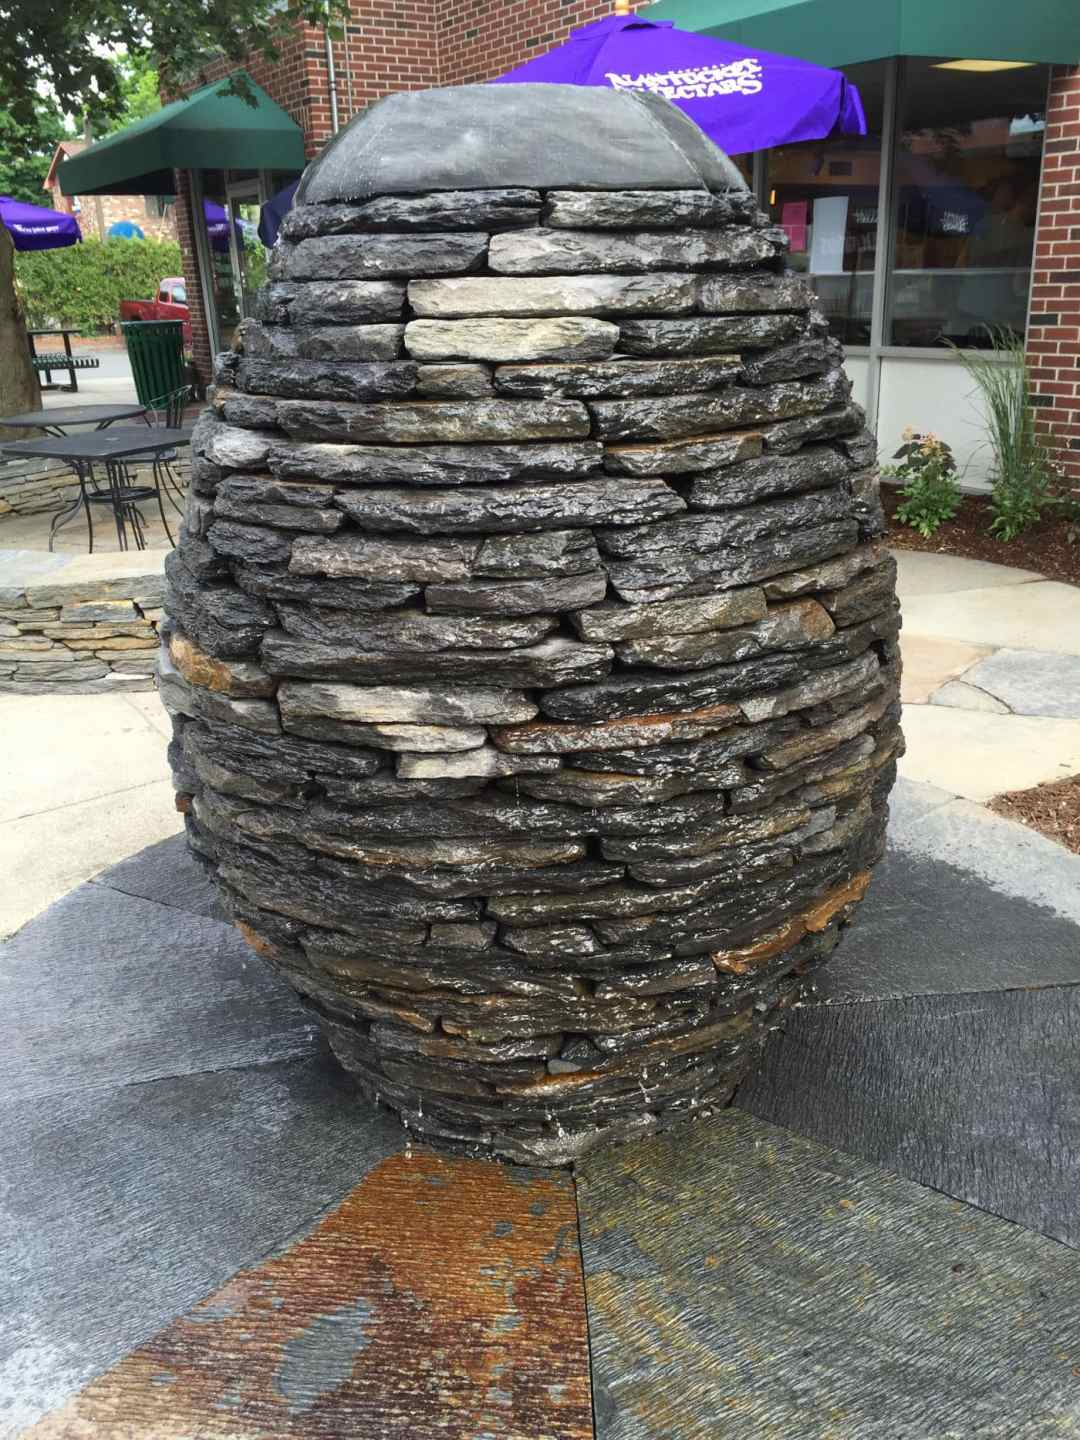 Sustainable Landscape Design and Stonework Western MA - Coopers